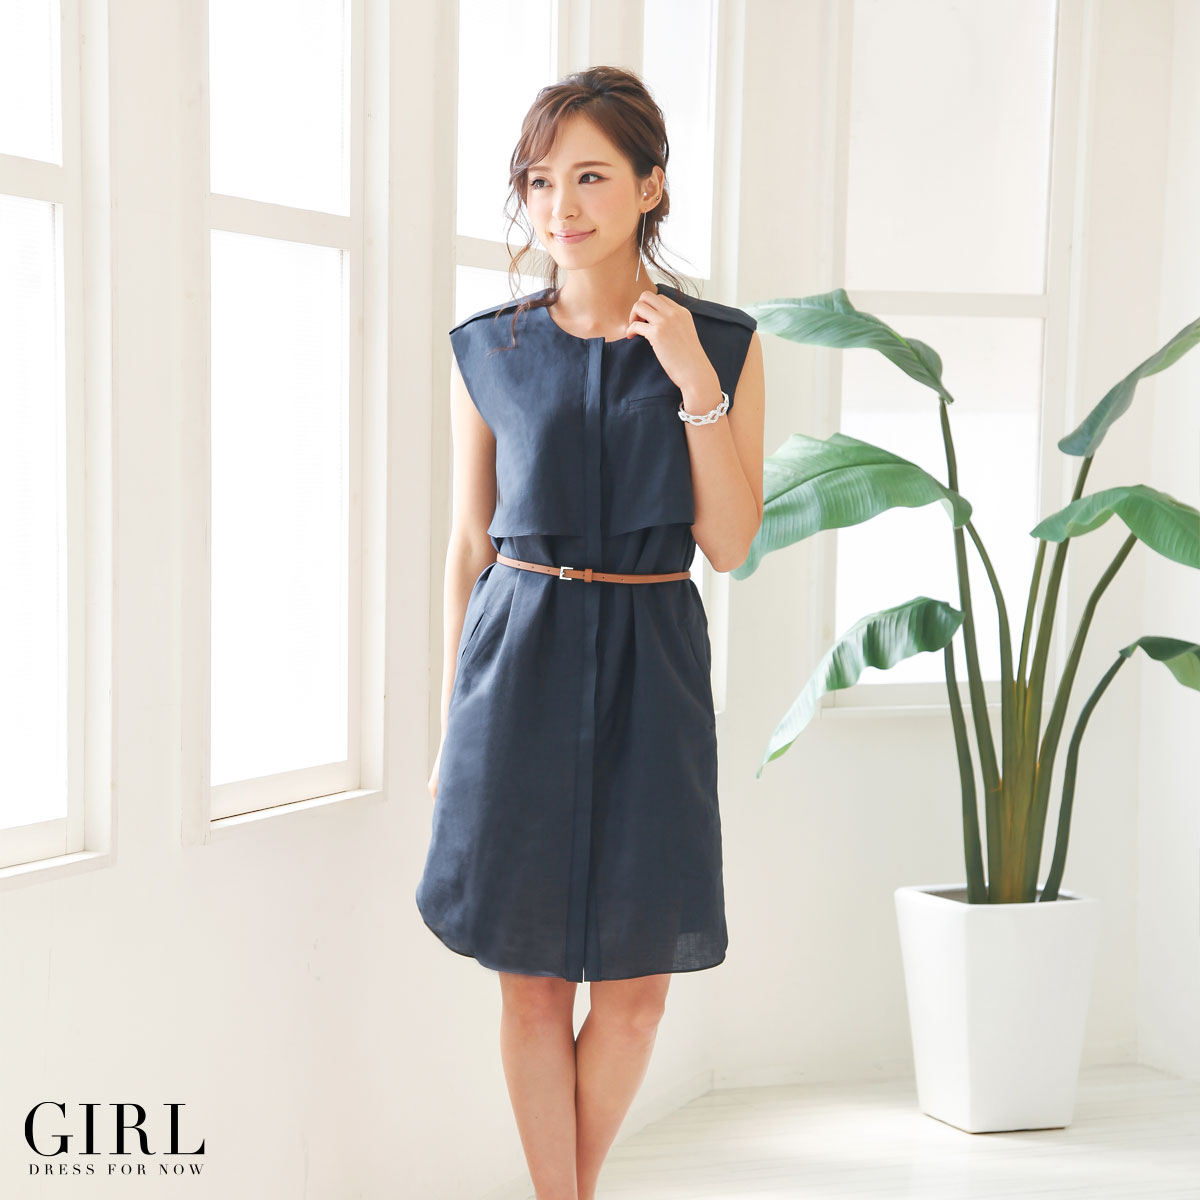 c2606caacf203 Dress shop GIRL: One piece dress invited Parties ladies formal sleeveless  sleeves 20s 30s 40s adult one size fits most   Rakuten Global Market